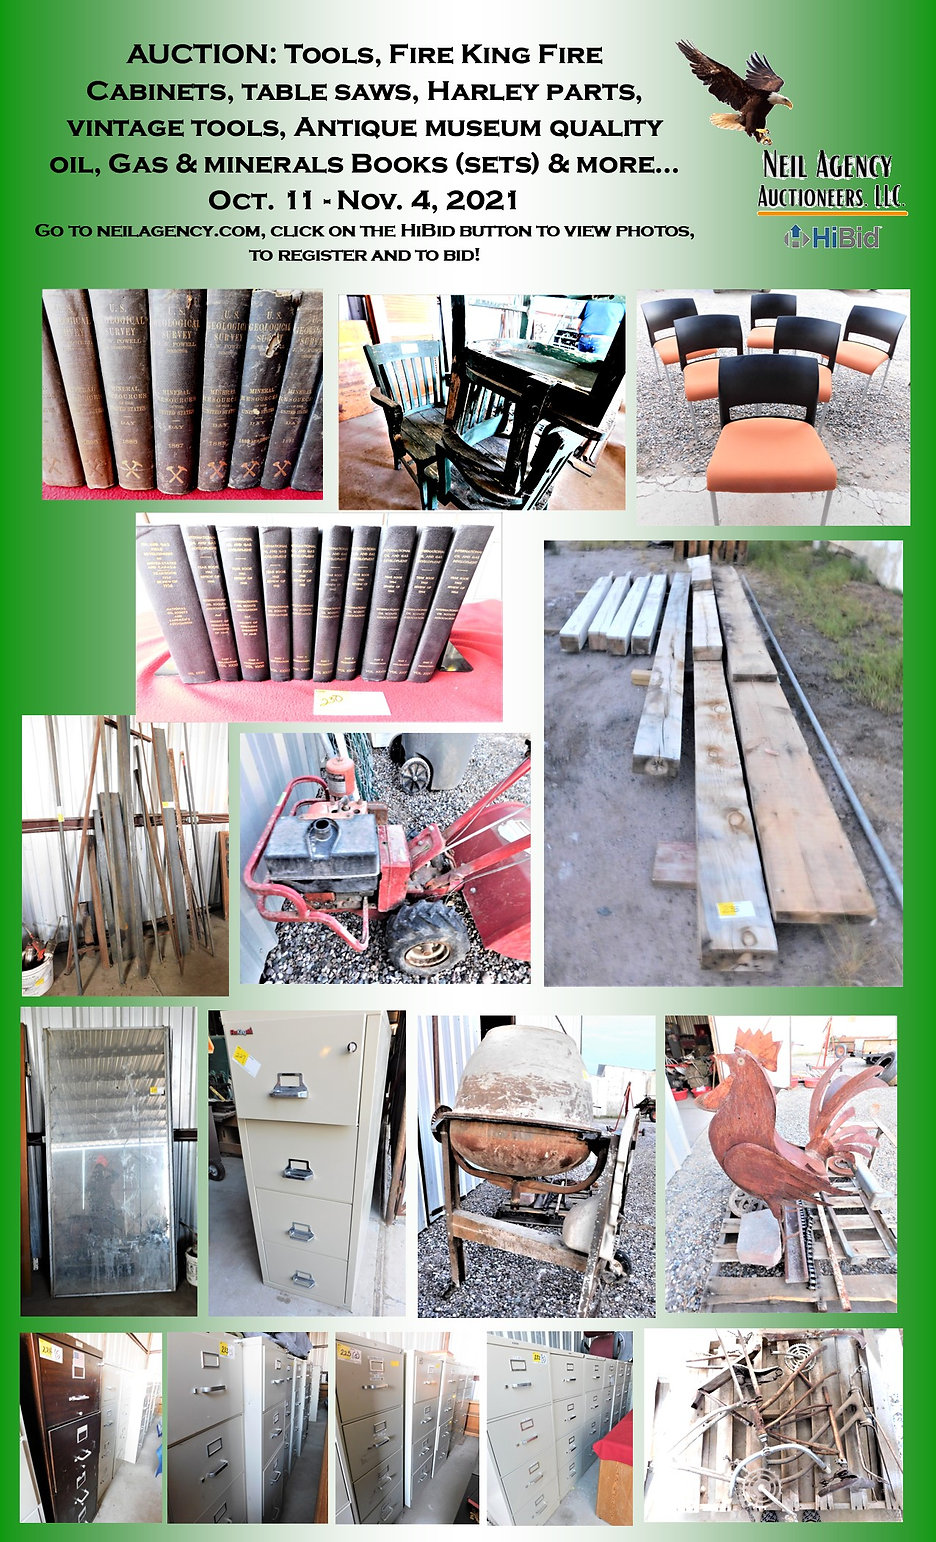 Tools Fire Cabinets Table Saws and More 2.jpg